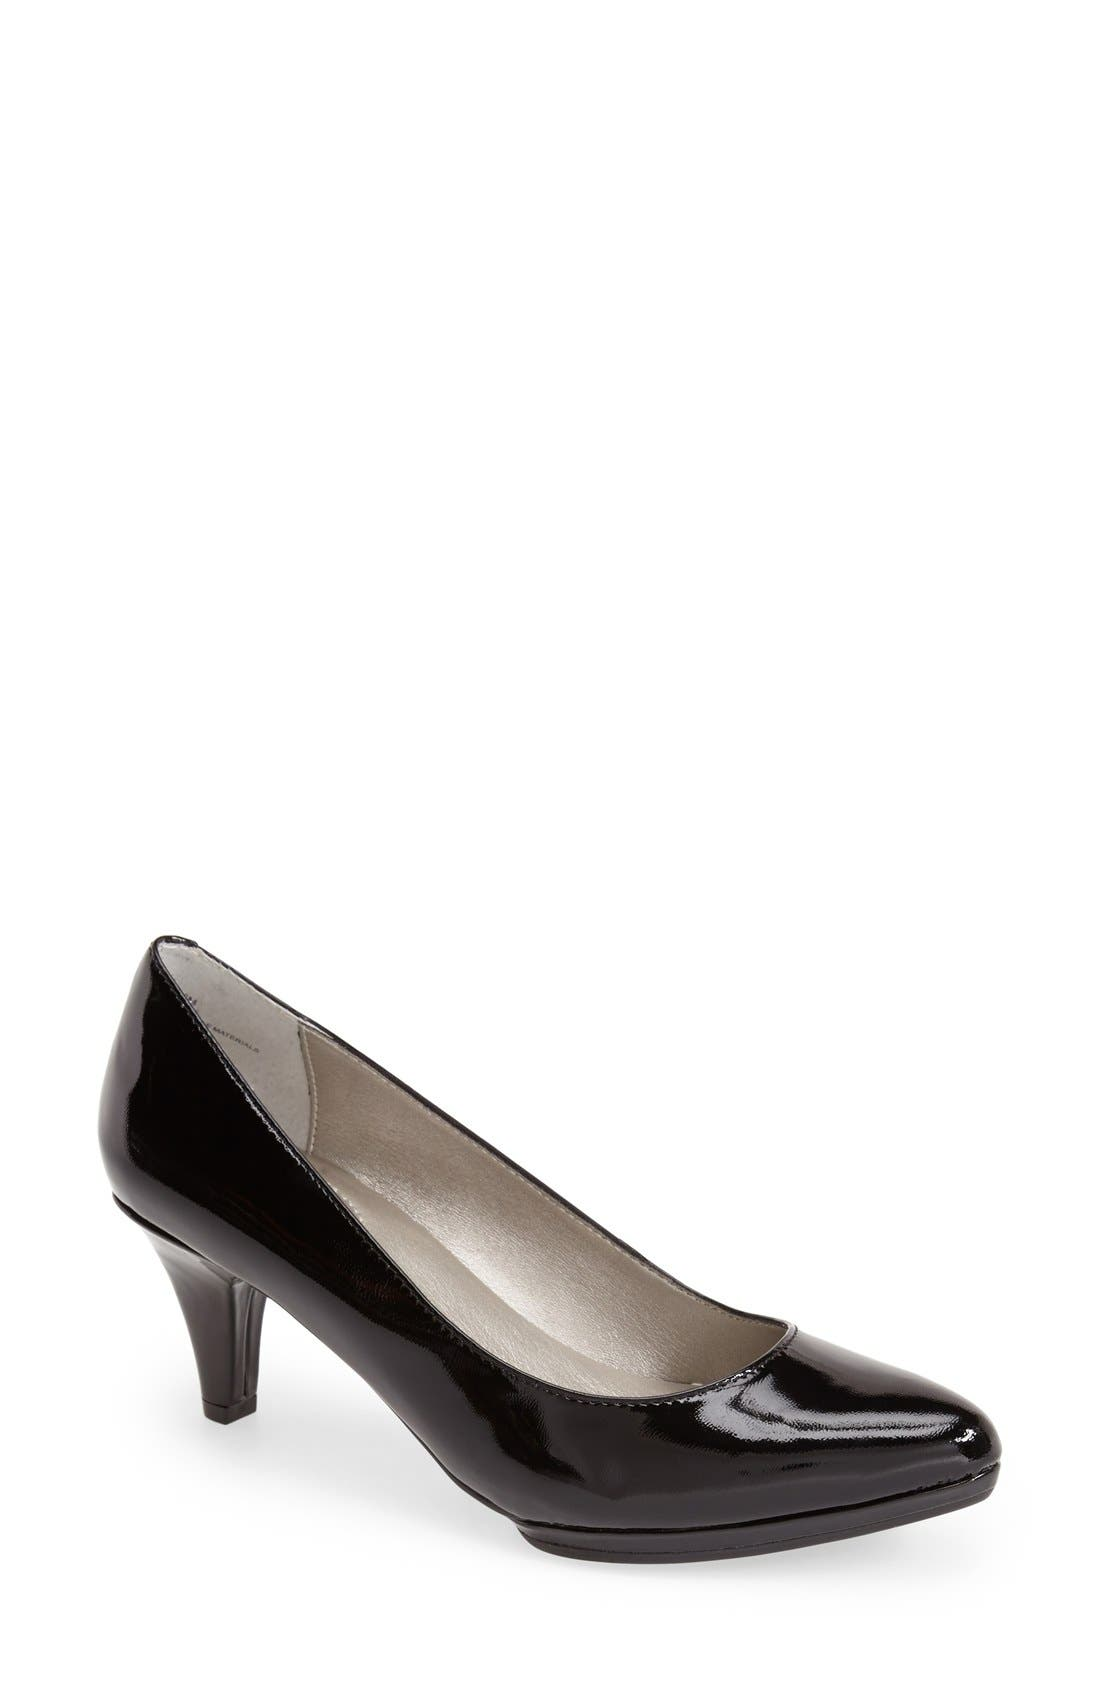 Main Image - Me Too 'Andrea' Patent Leather Pump (Women)